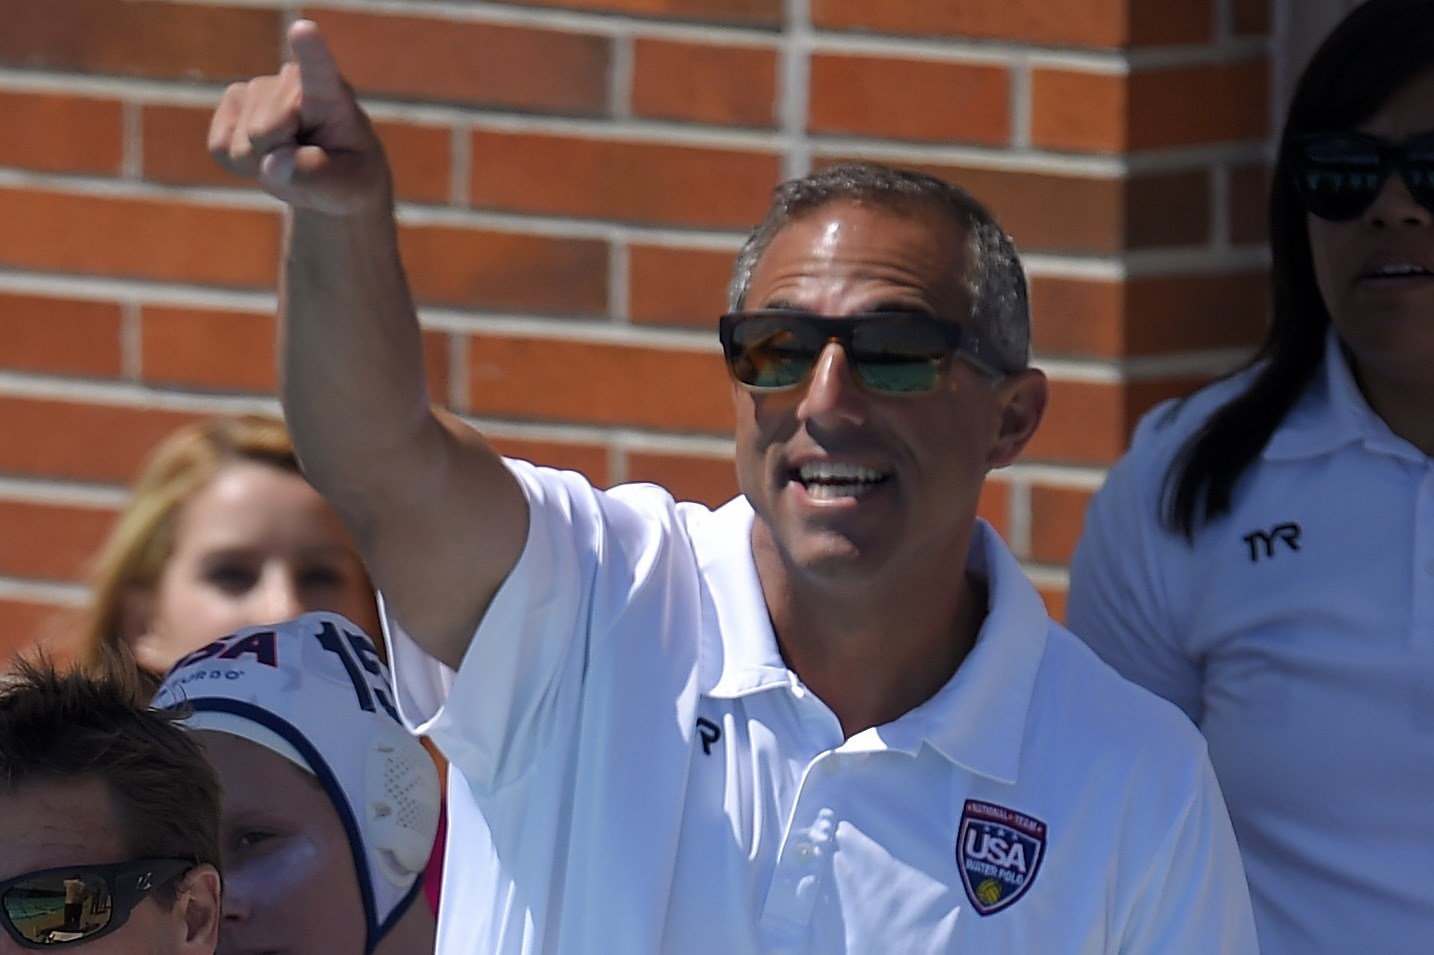 United States head coach Adam Krikorian gestures during a women's exhibition water polo match against Australia, Sunday, May 22, 2016, in Los Angeles. (AP Photo/Mark J. Terrill)